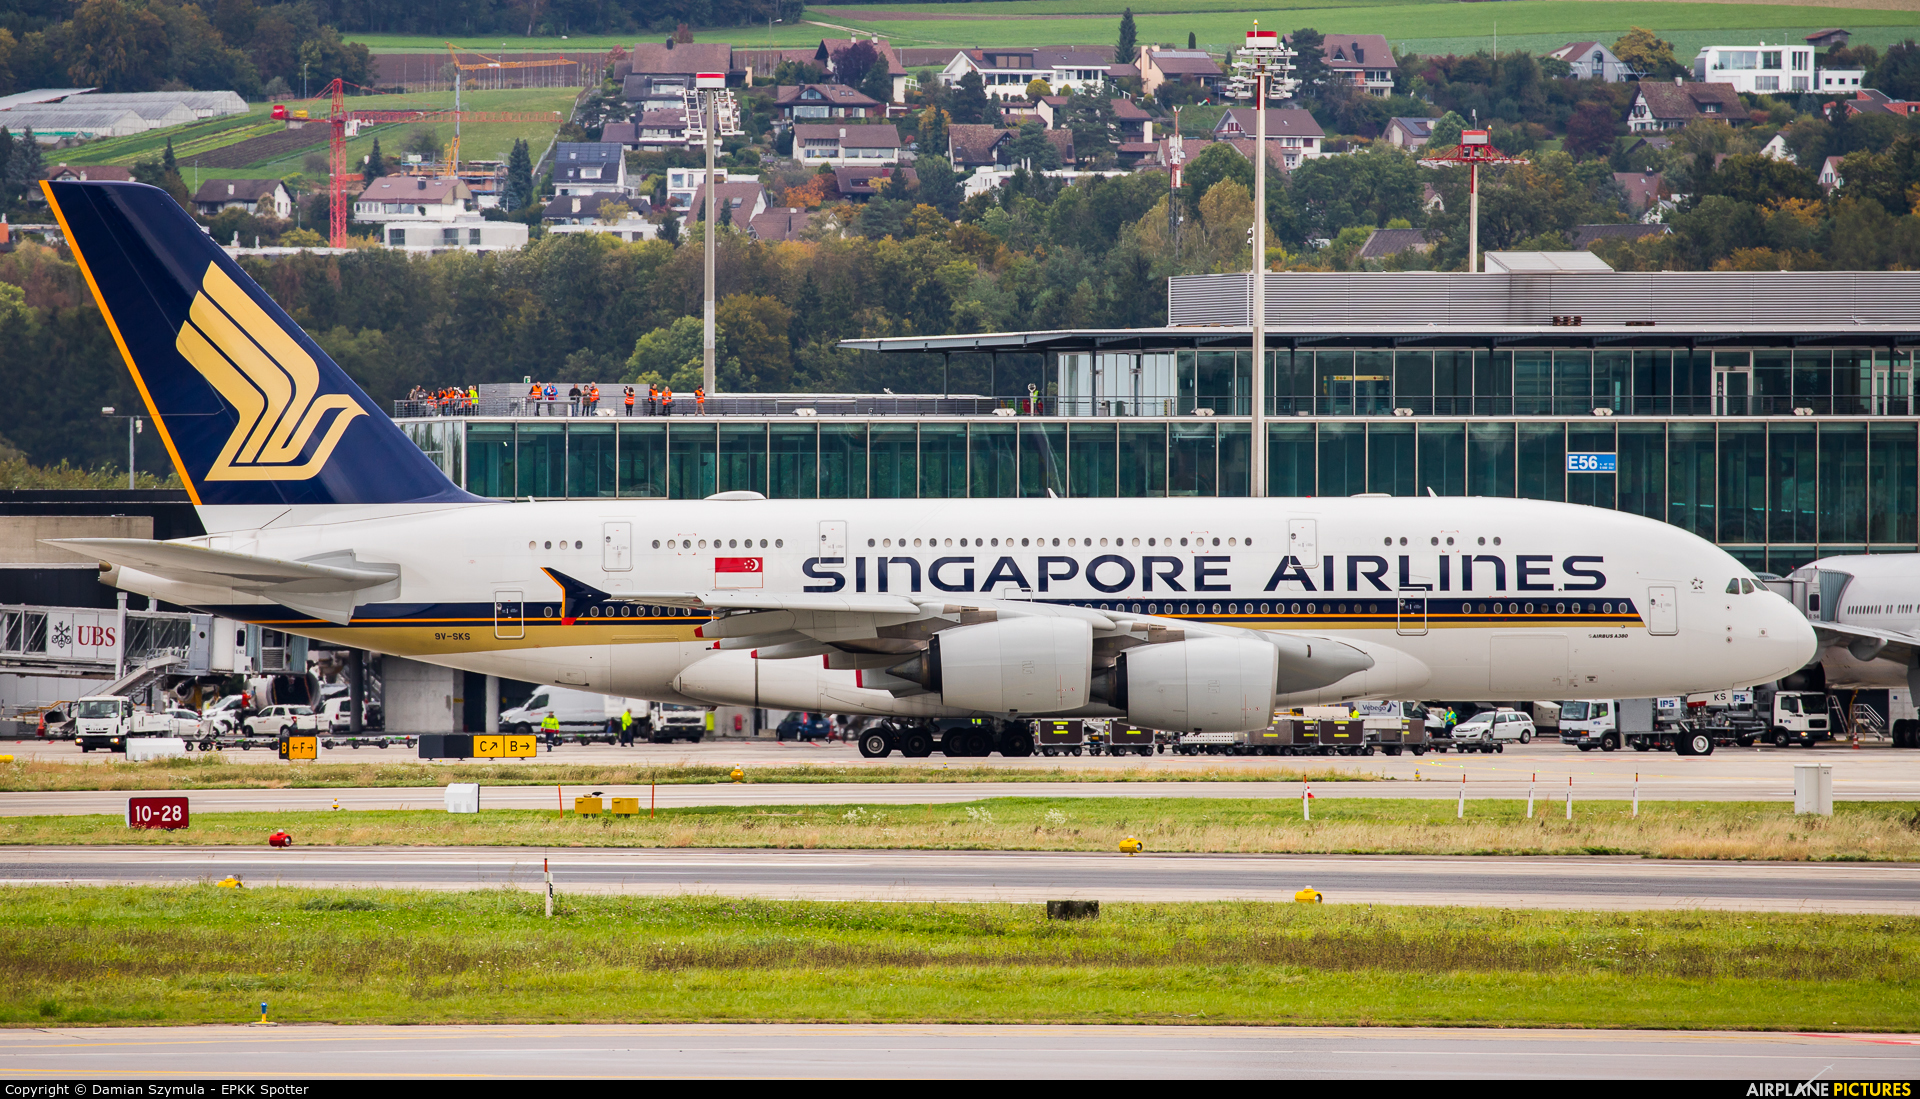 Singapore Airlines 9V-SKS aircraft at Zurich